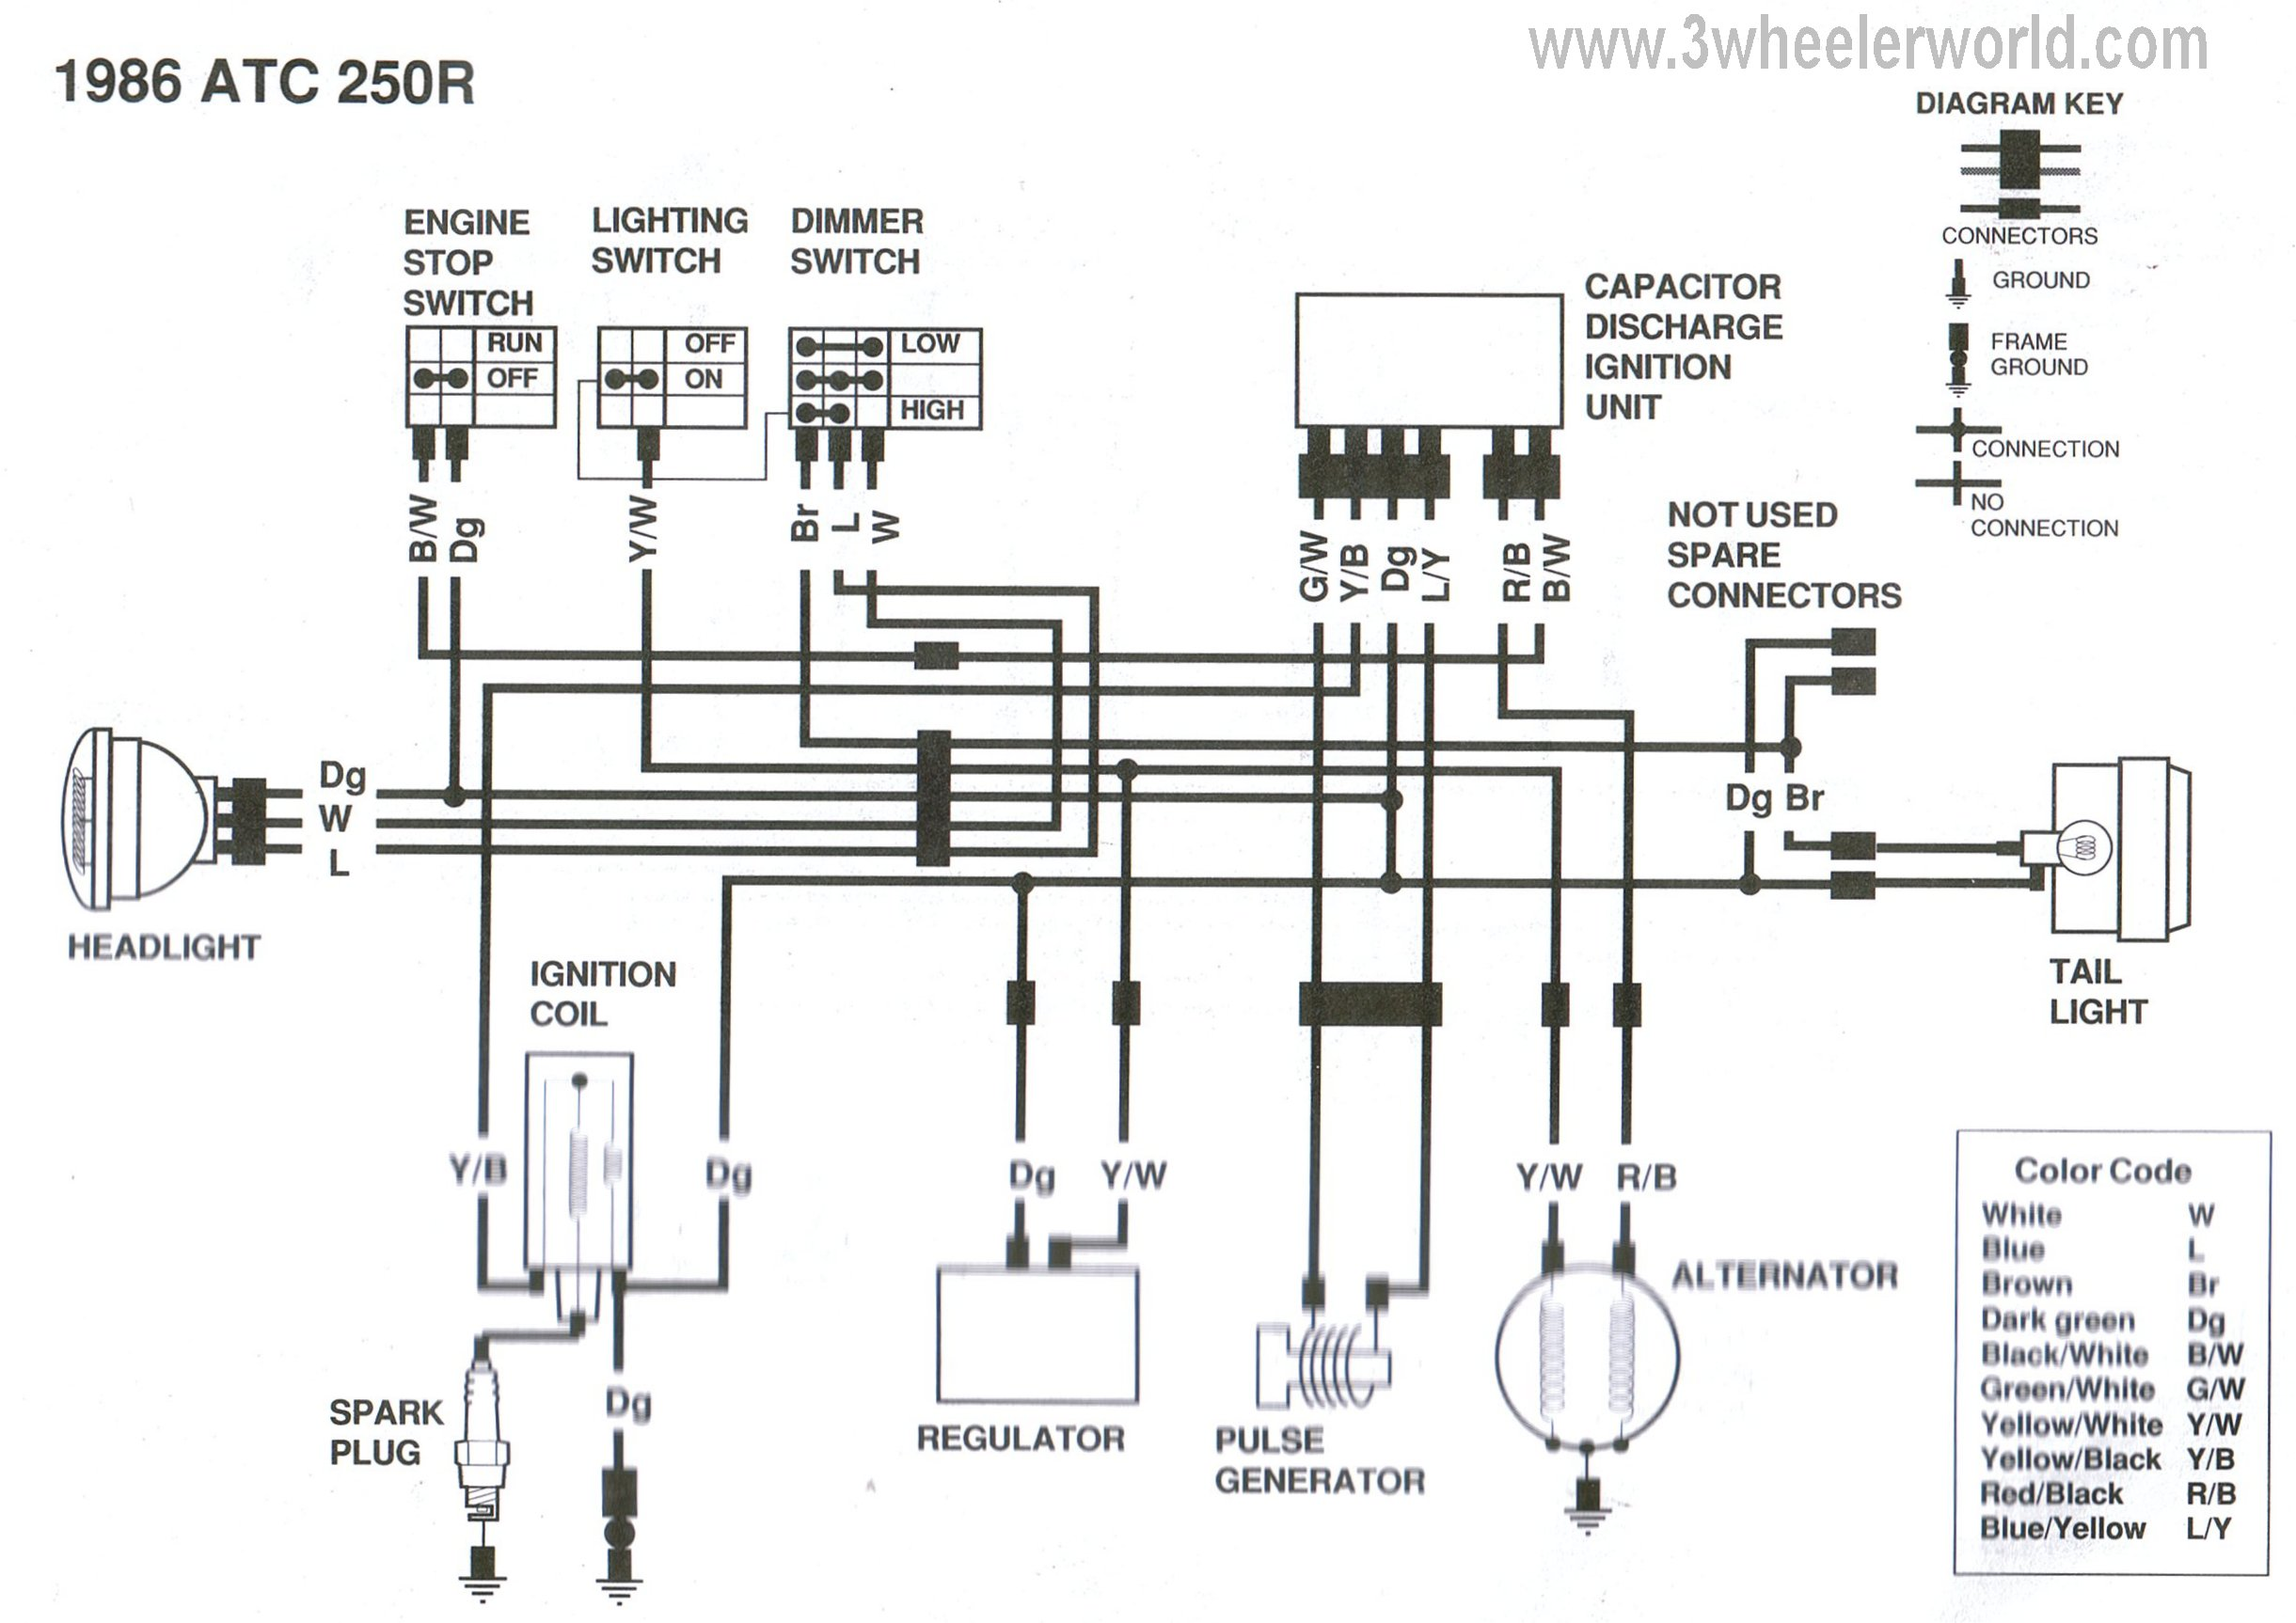 Mercury Milan Parts Diagram additionally Wiring Diagram 2001 Kenworth T800 Fuse also Watch furthermore Caterpillar C15 Fuel Injector Wiring Diagram in addition Wiring diagrams 02. on 1992 peterbilt wiring diagram